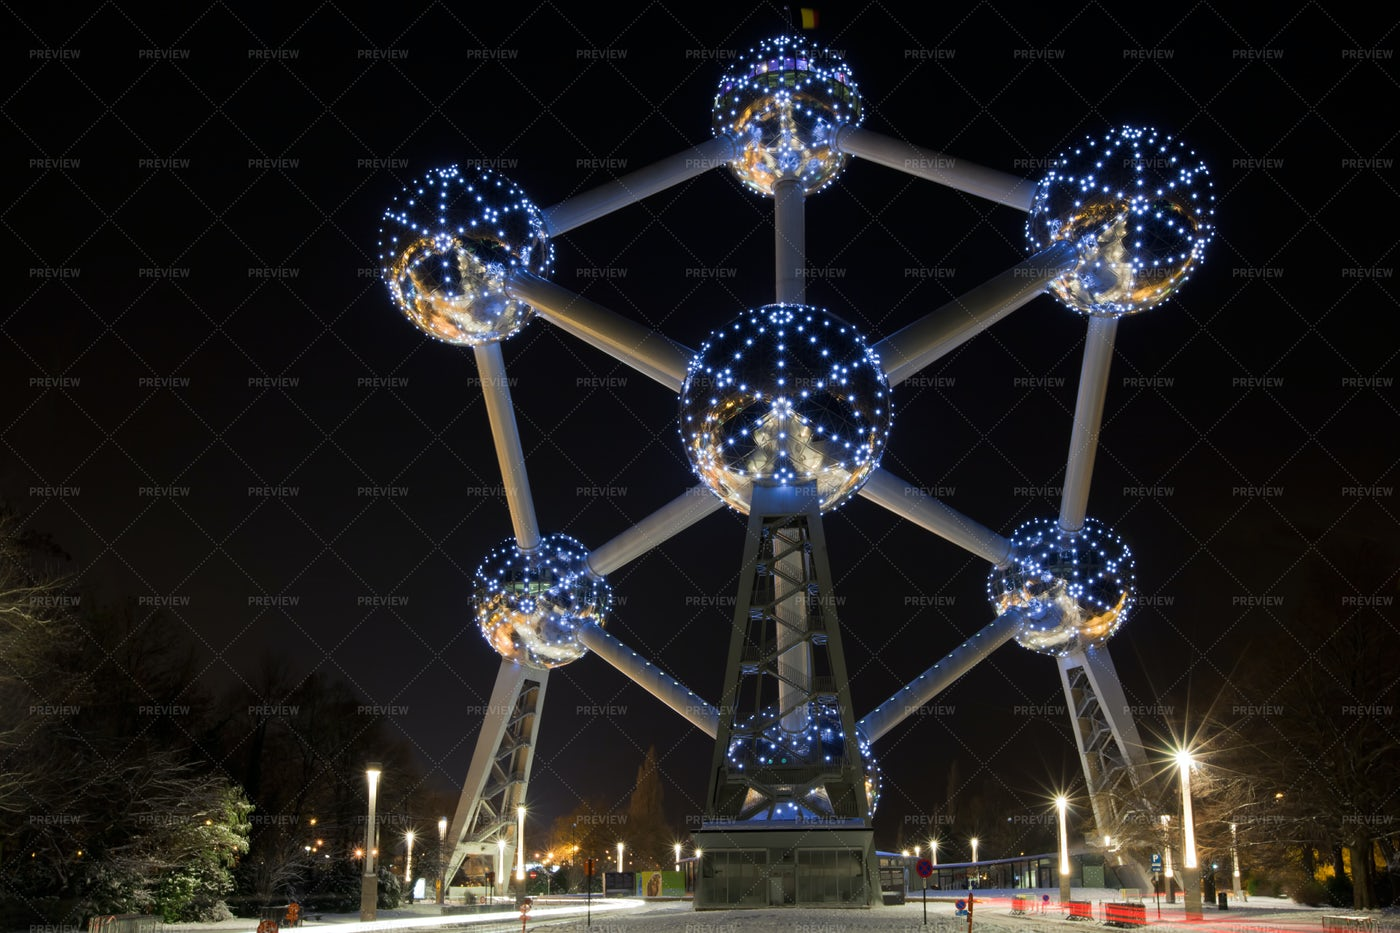 Atomium In Brussels At Night: Stock Photos